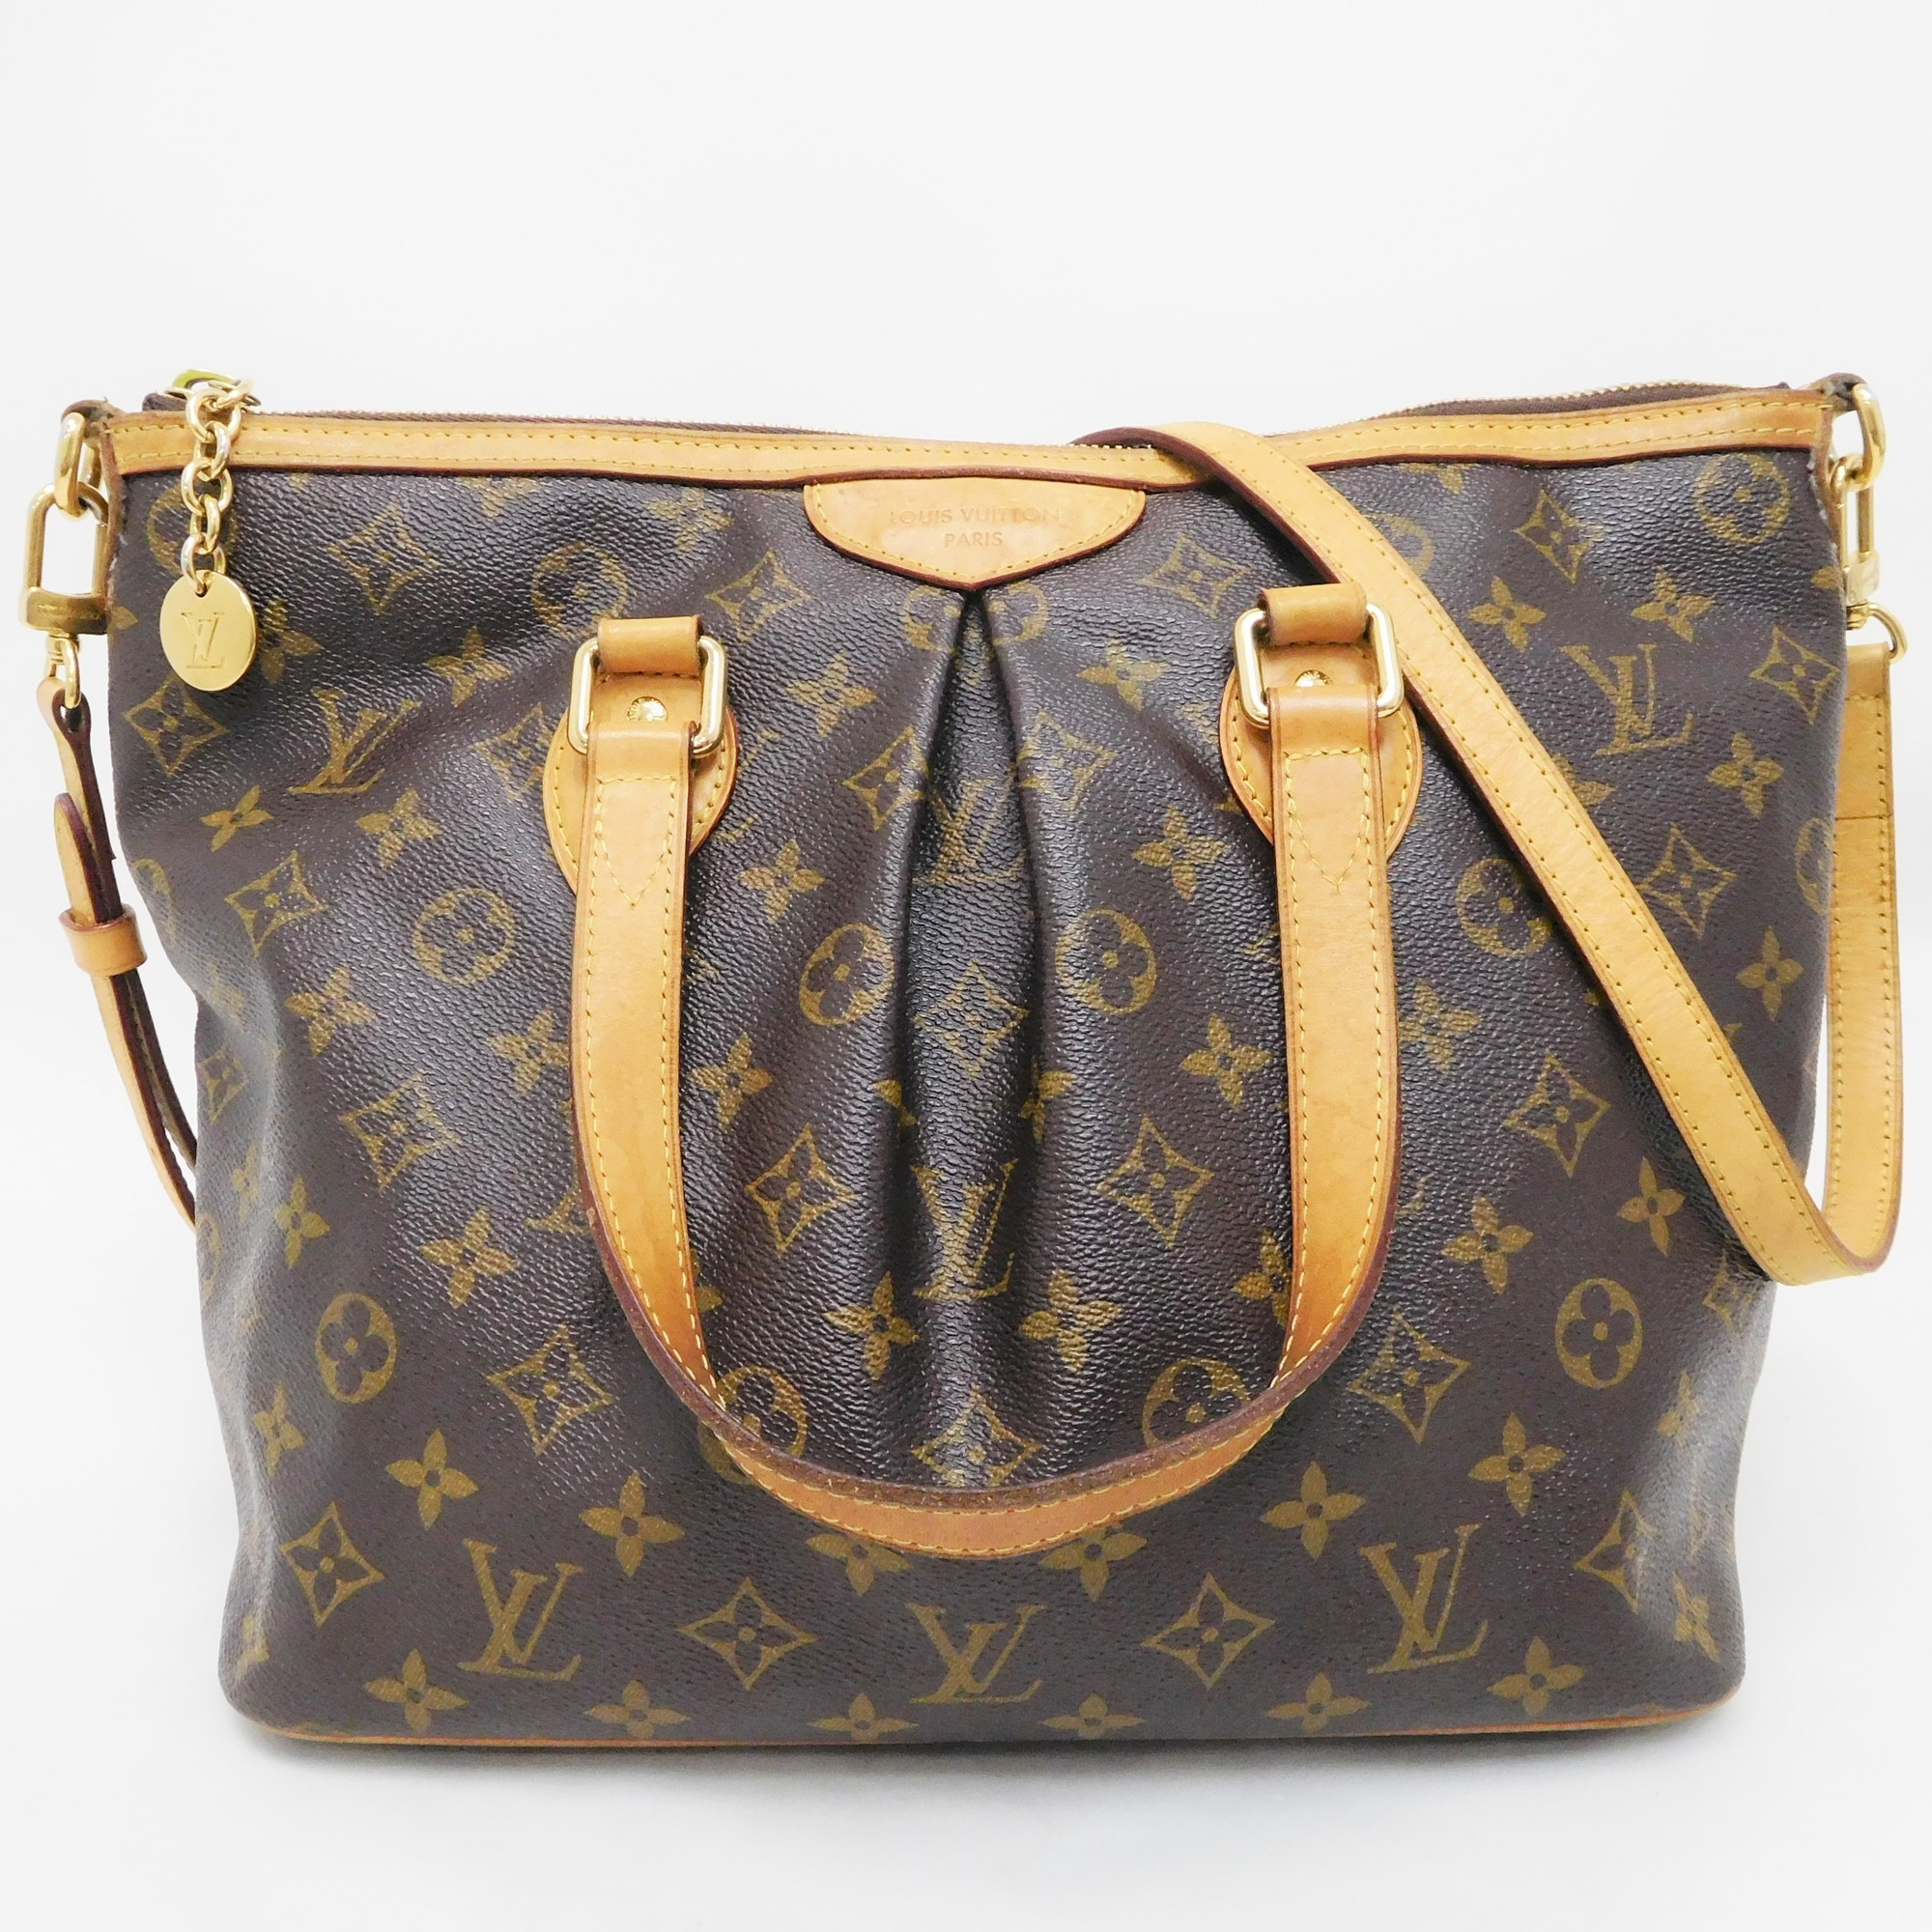 Auth Louis Vuitton Monogram Palermo PM M40145 Women s Shoulder Bag ... 34c22a331e327